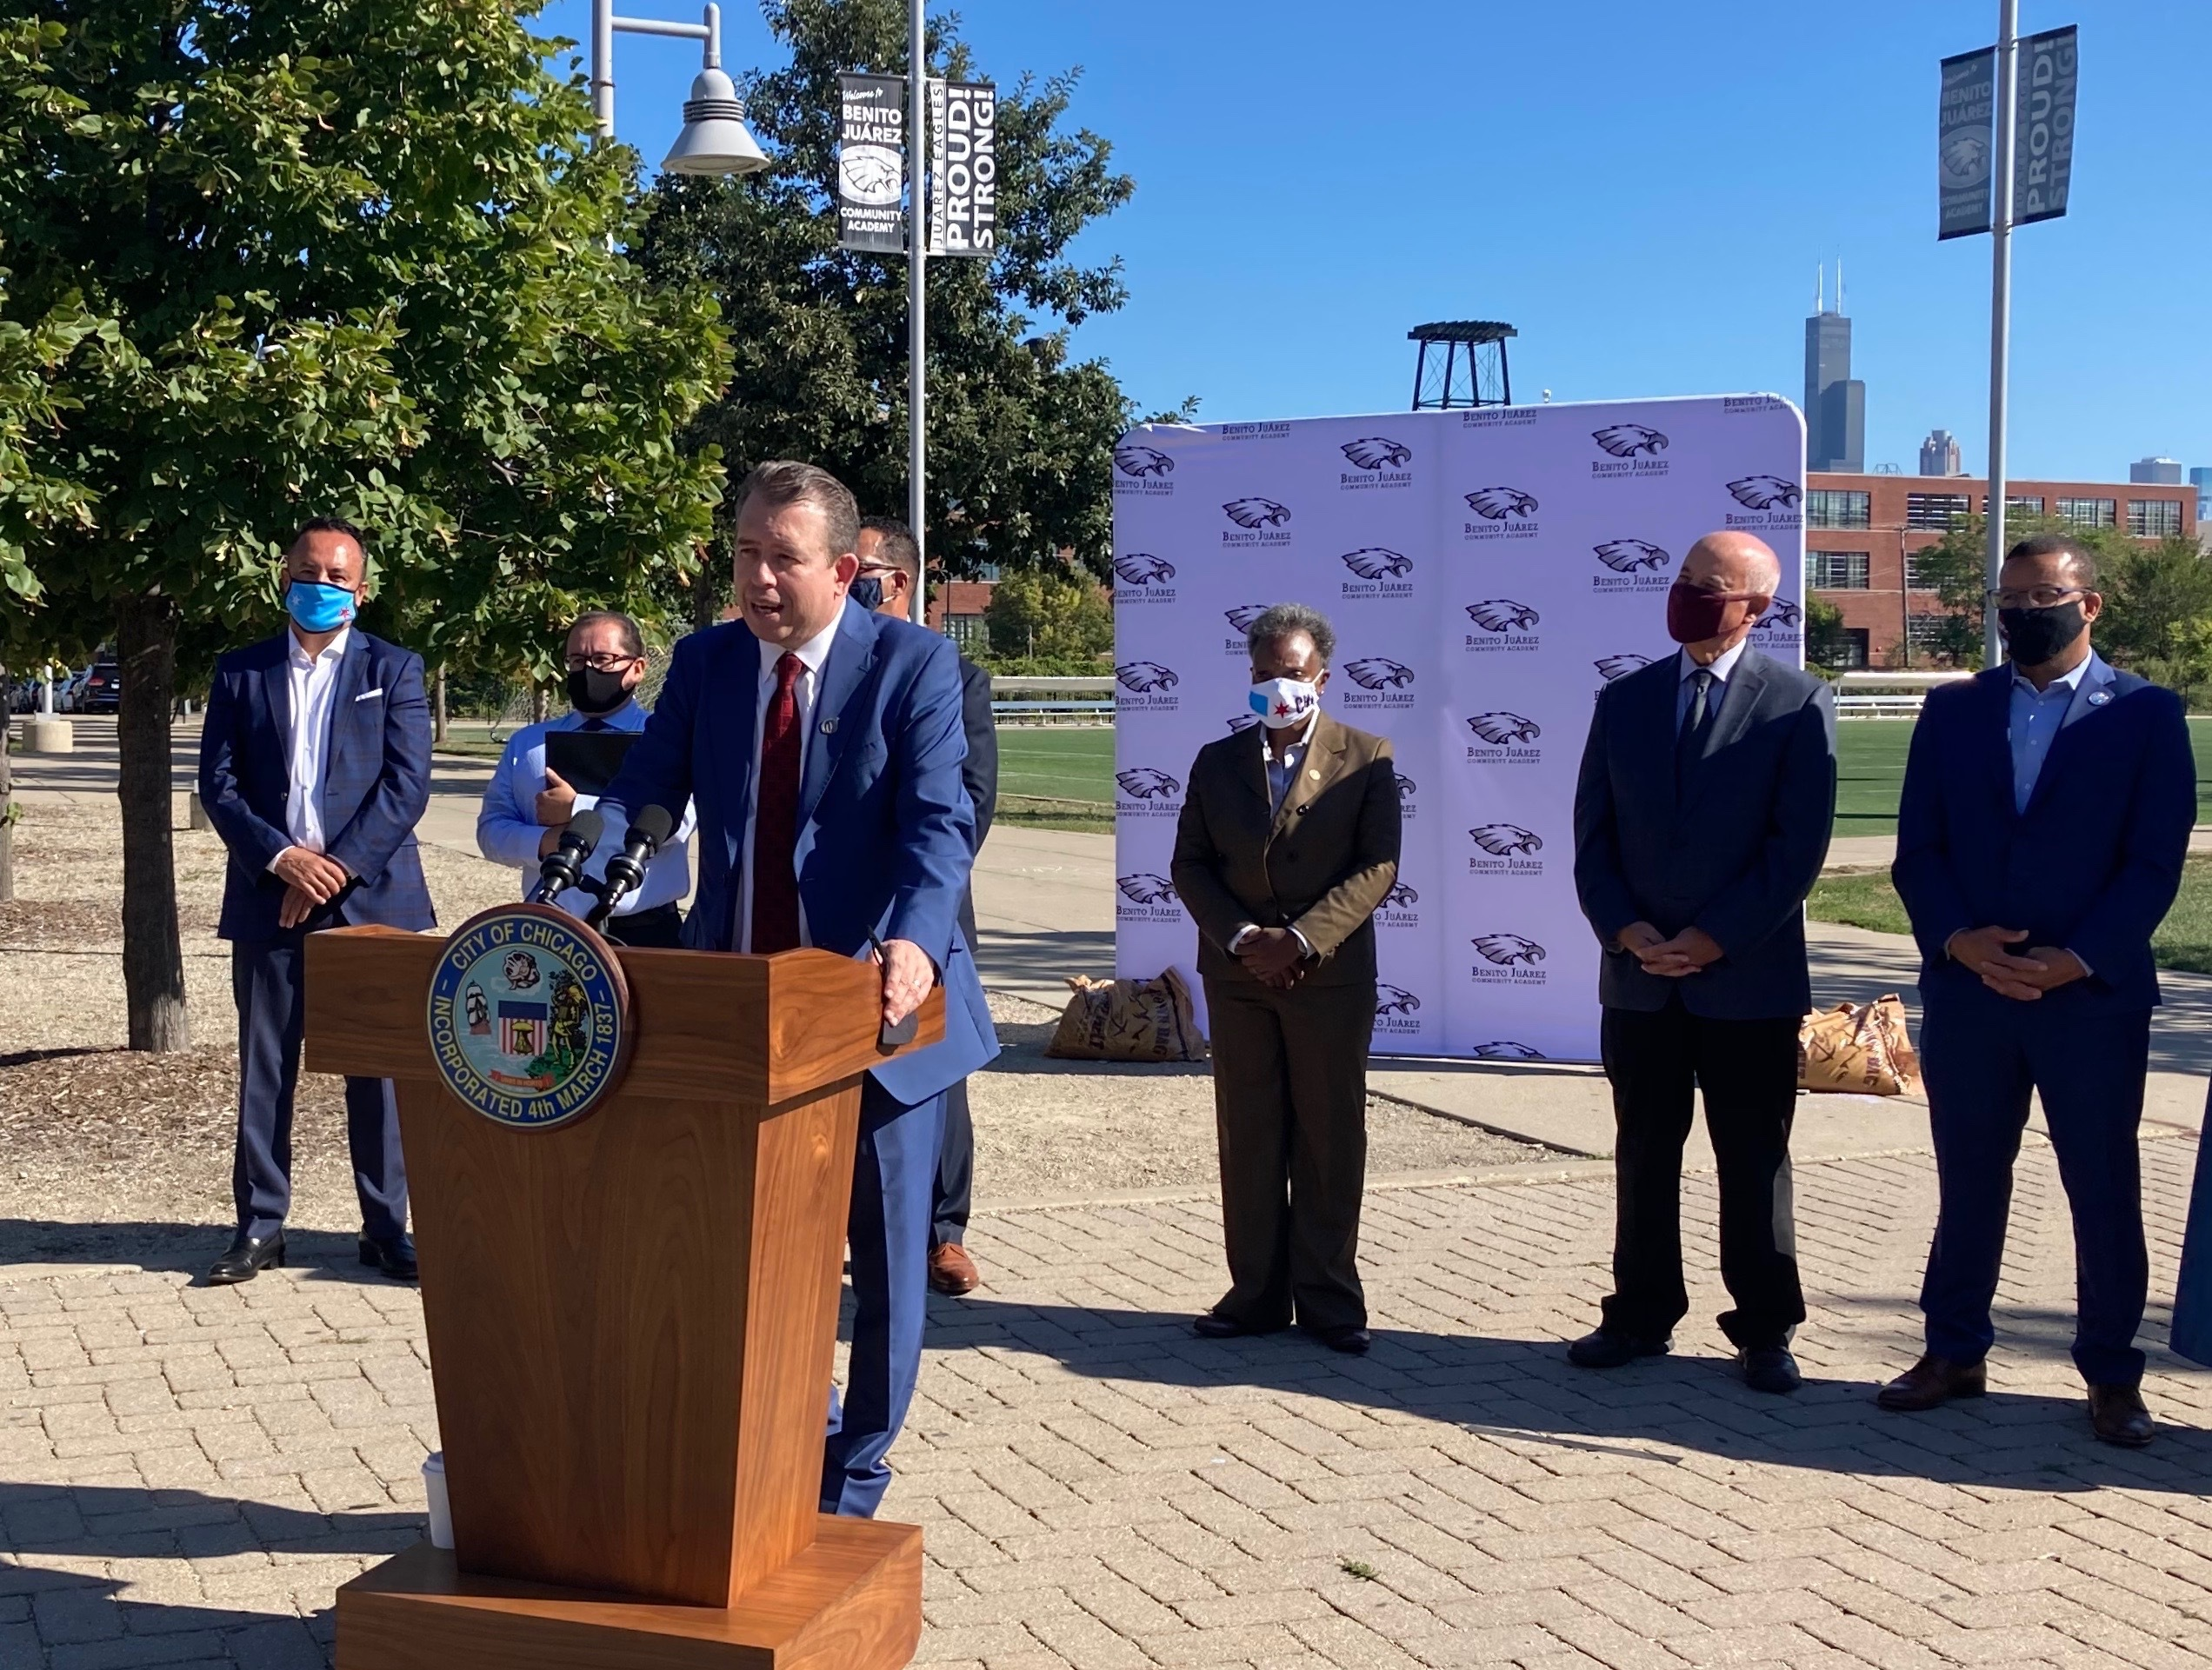 Newly announced Chicago Public Schools CEO Pedro Martinez, wearing a blue suit, stands outside at a lectern and speaks during a press conference as district leaders look on behind him.